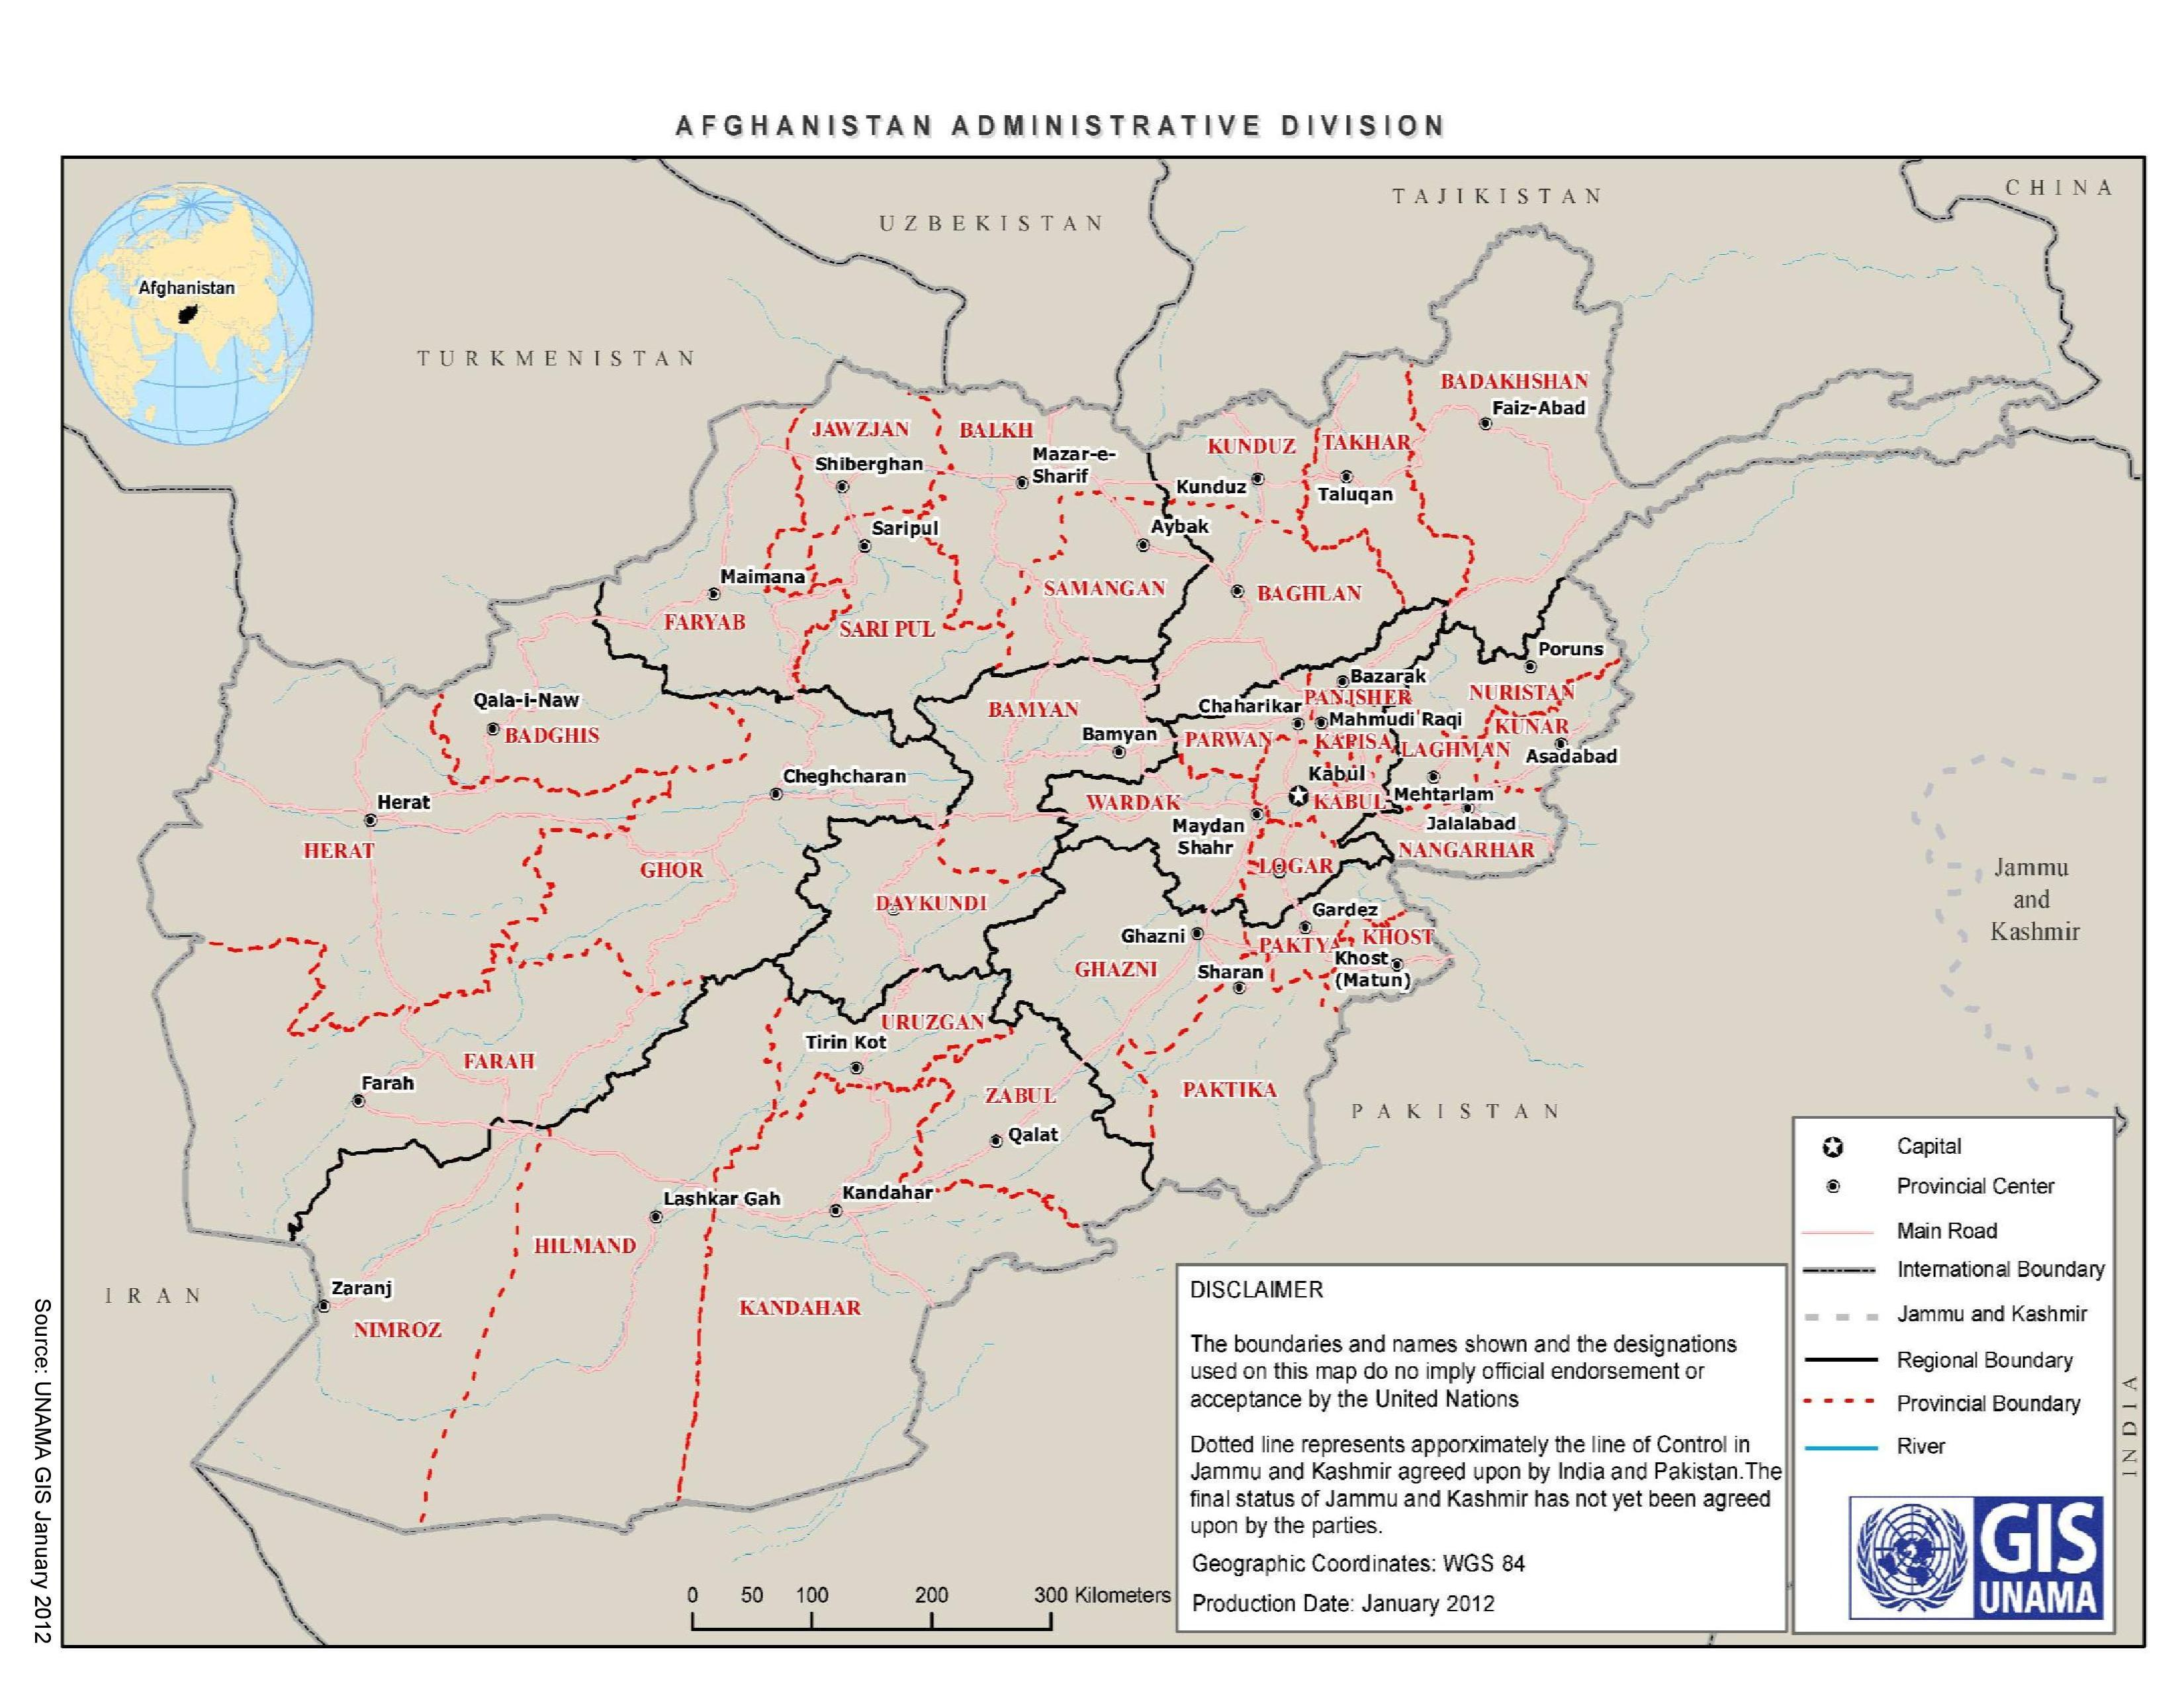 Afghanistan Reported US air and drone strikes 2015 The Bureau